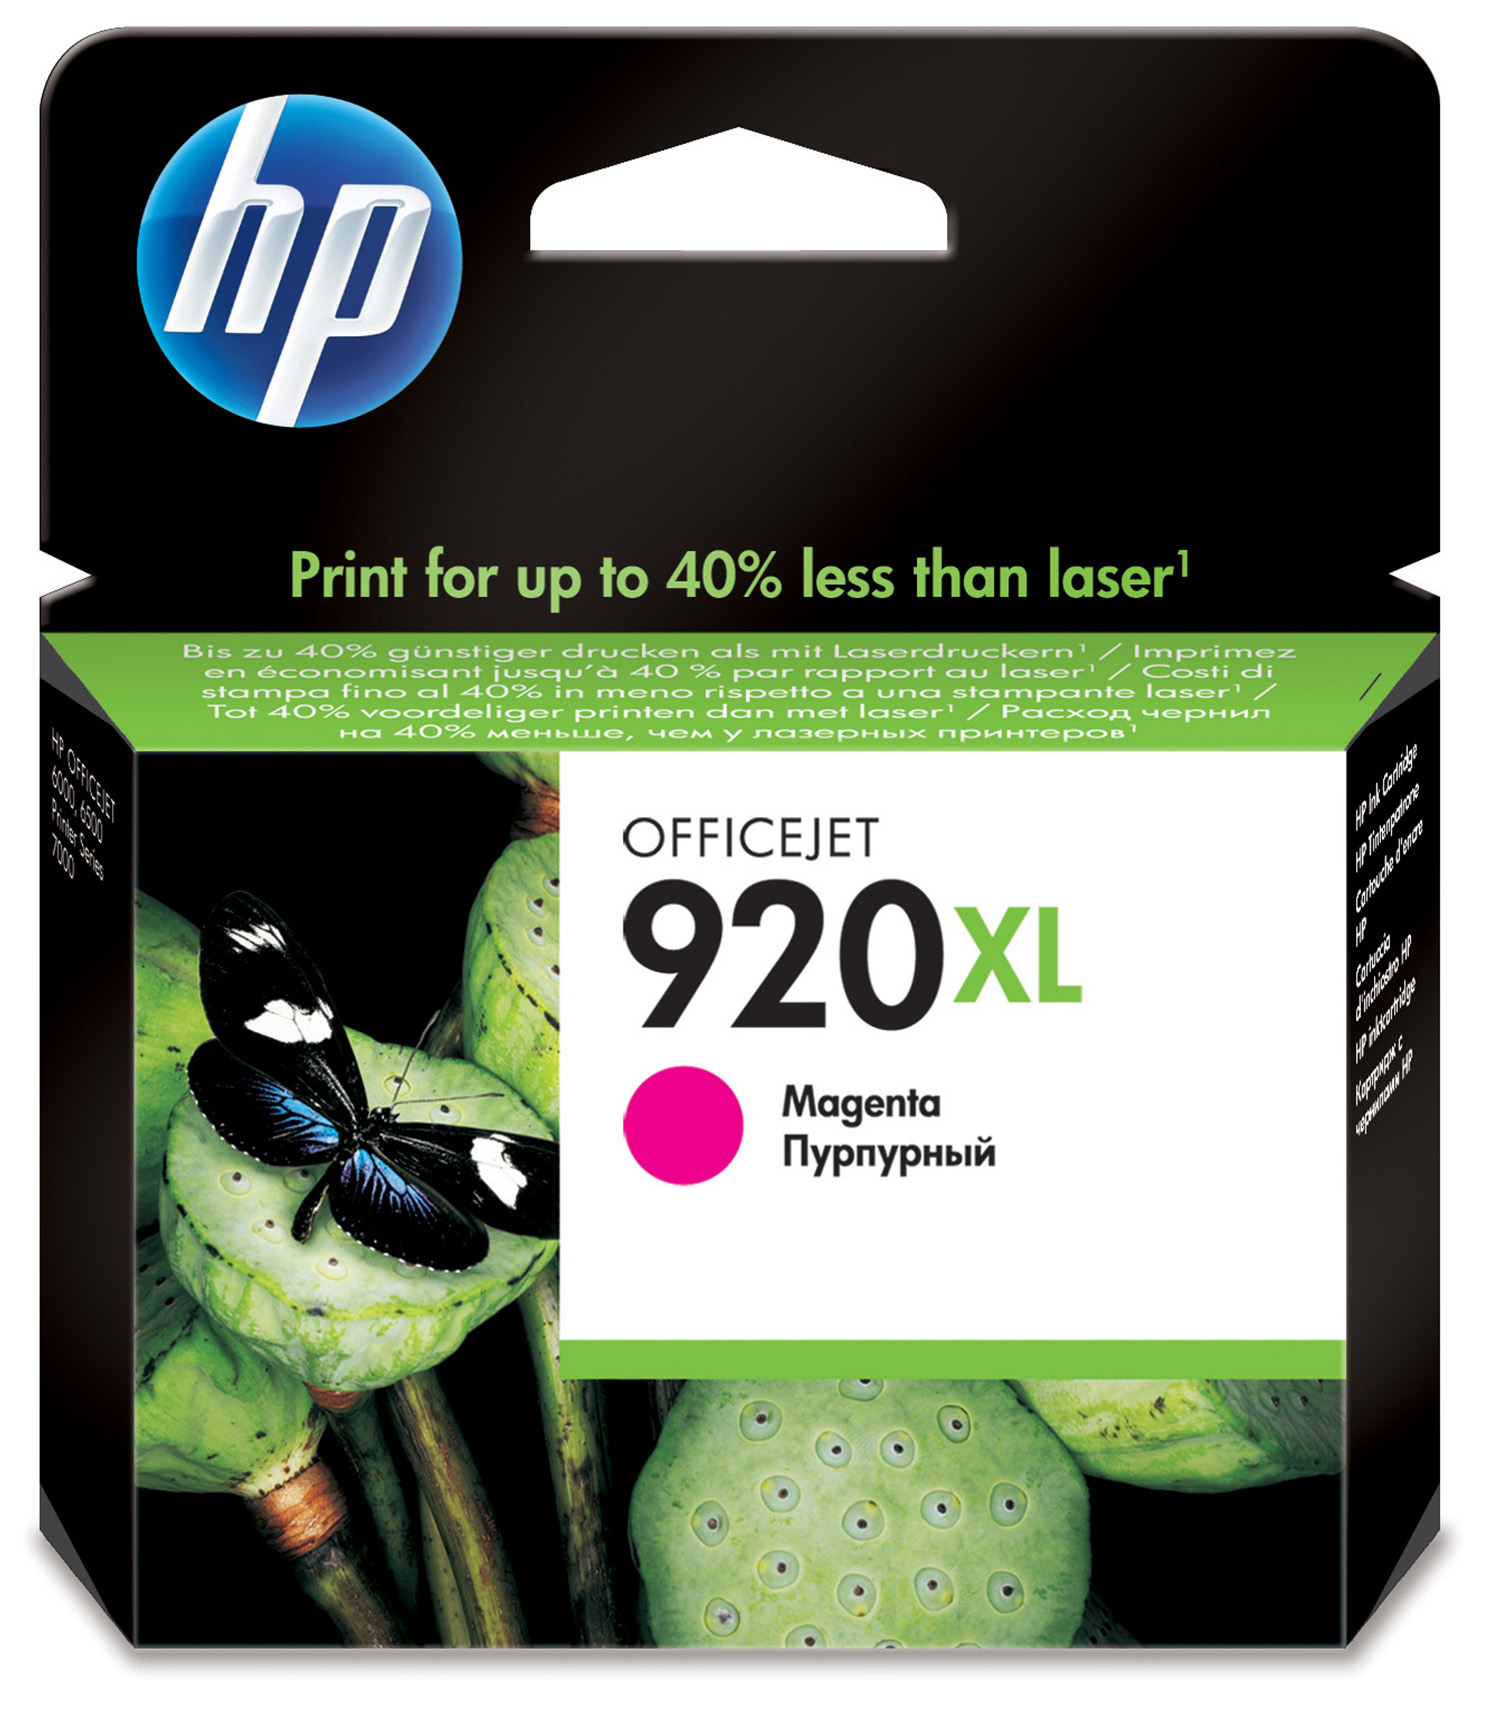 Cd973ae HP Hp 920xl Magenta Ink Cartridge - AD01